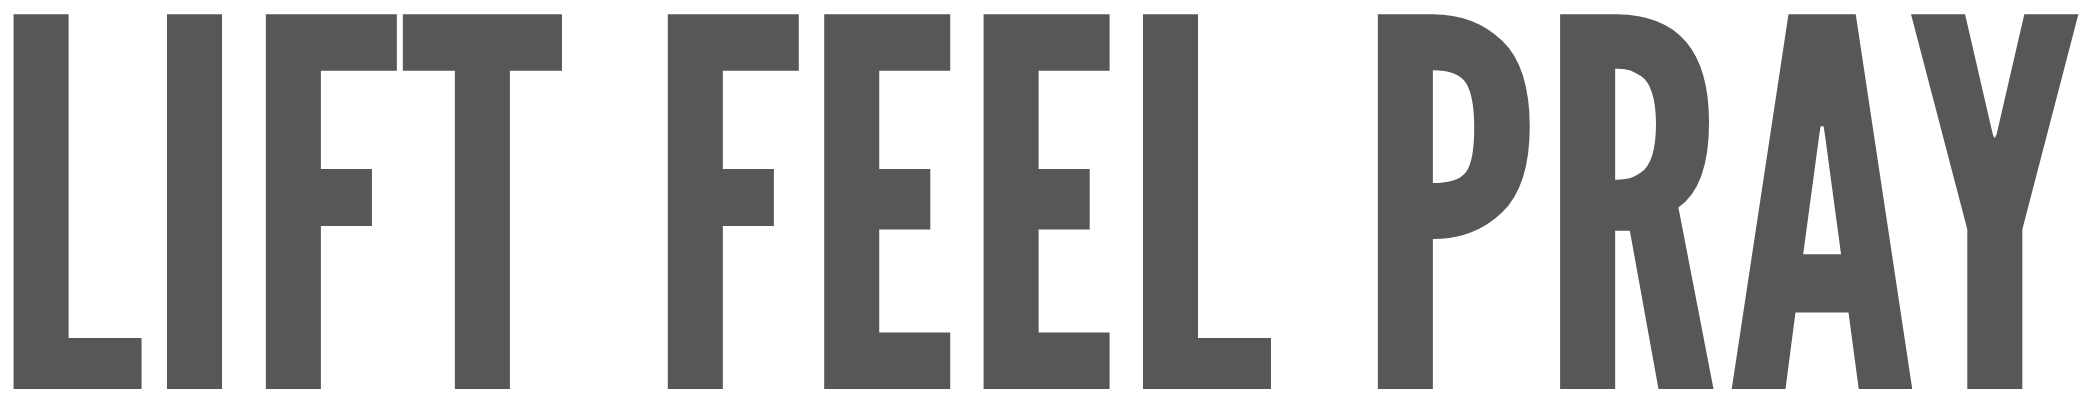 Logo for Lift Feel Pray